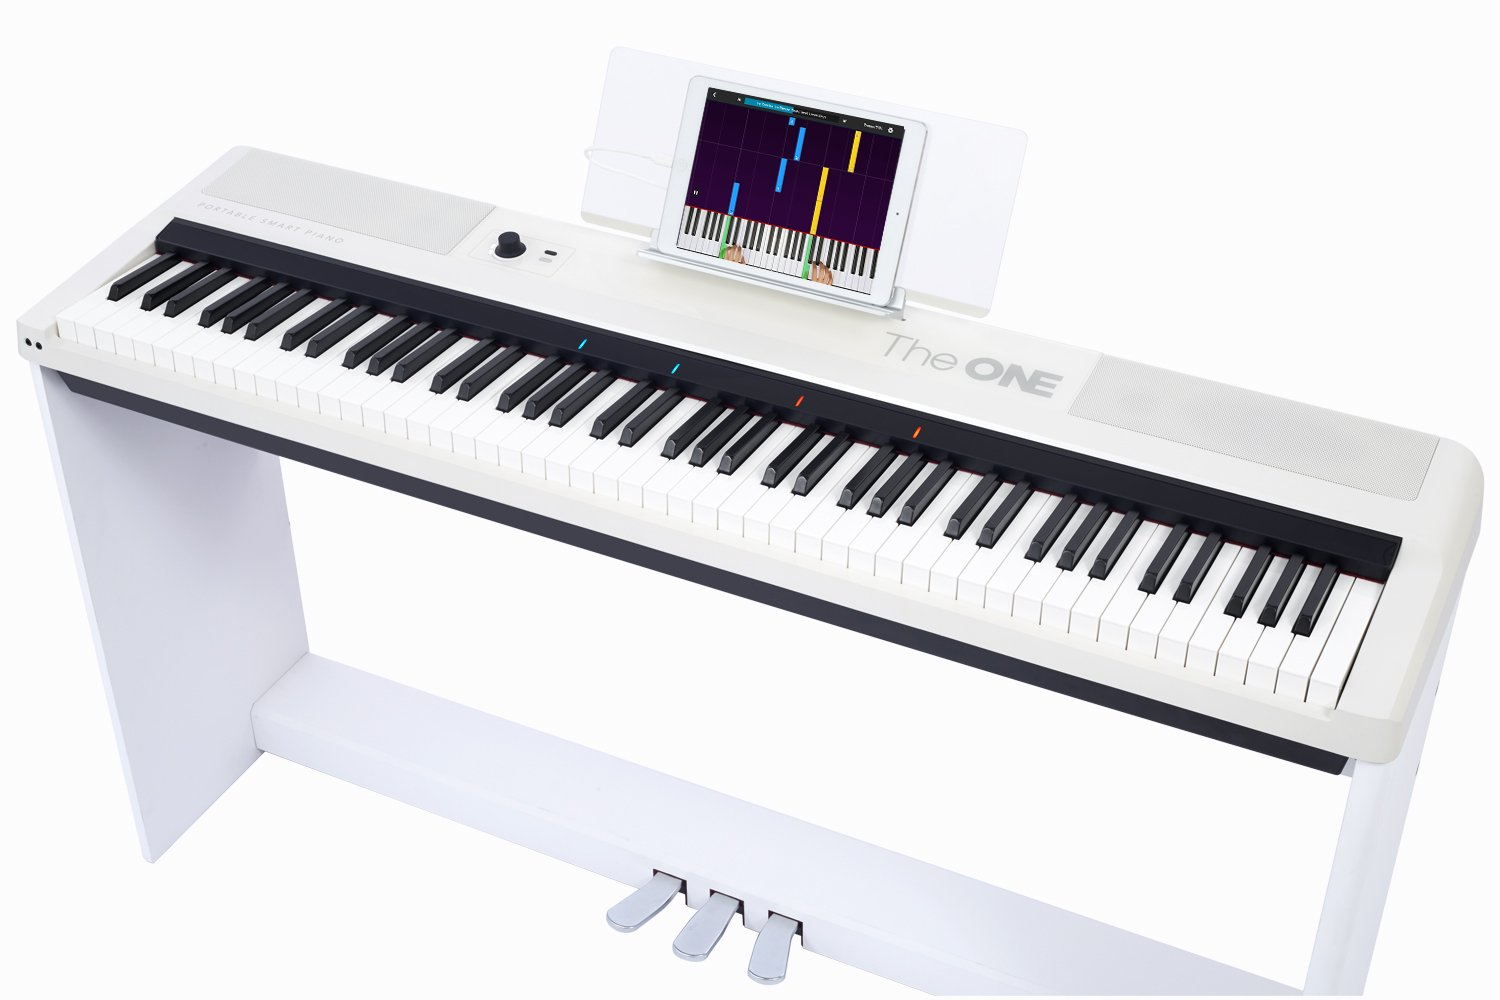 The ONE Music Group 88-Key Portable Piano Electronic MIDI Keyboard Weighted Action Digital Piano, Grace White by The ONE Music Group (Image #5)